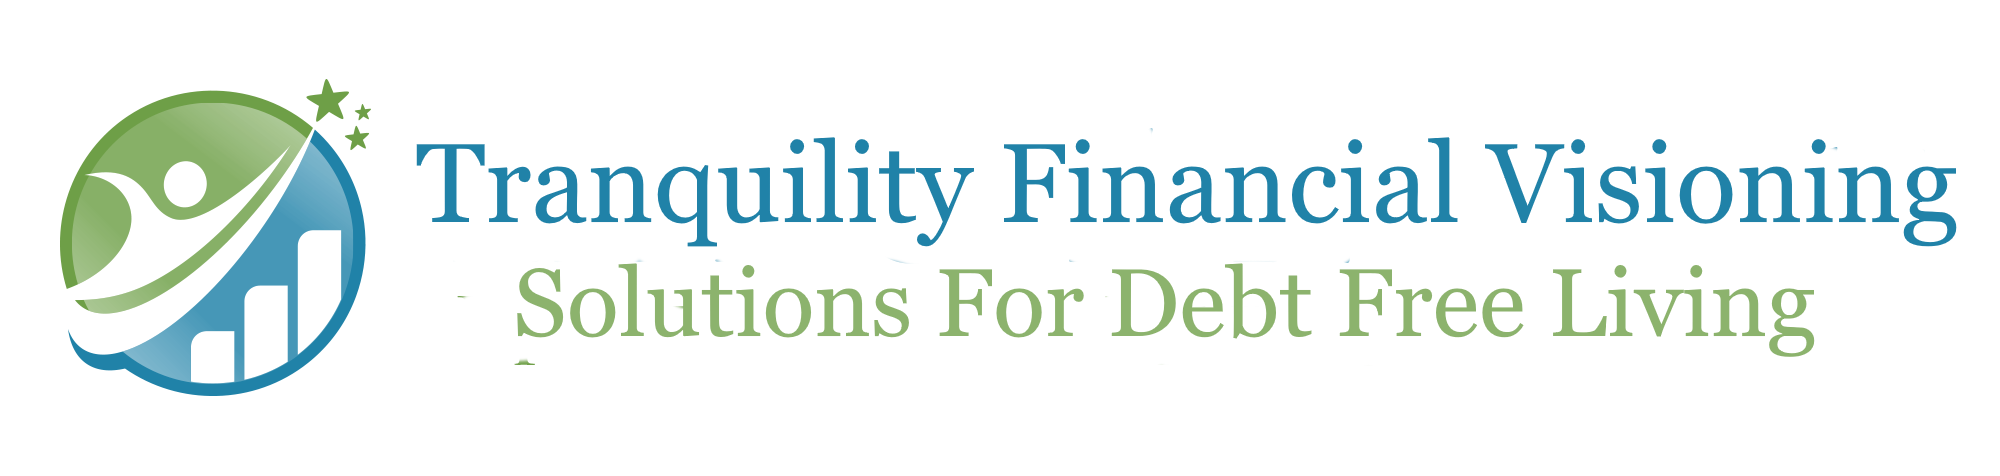 Tranquility Financial Visioning